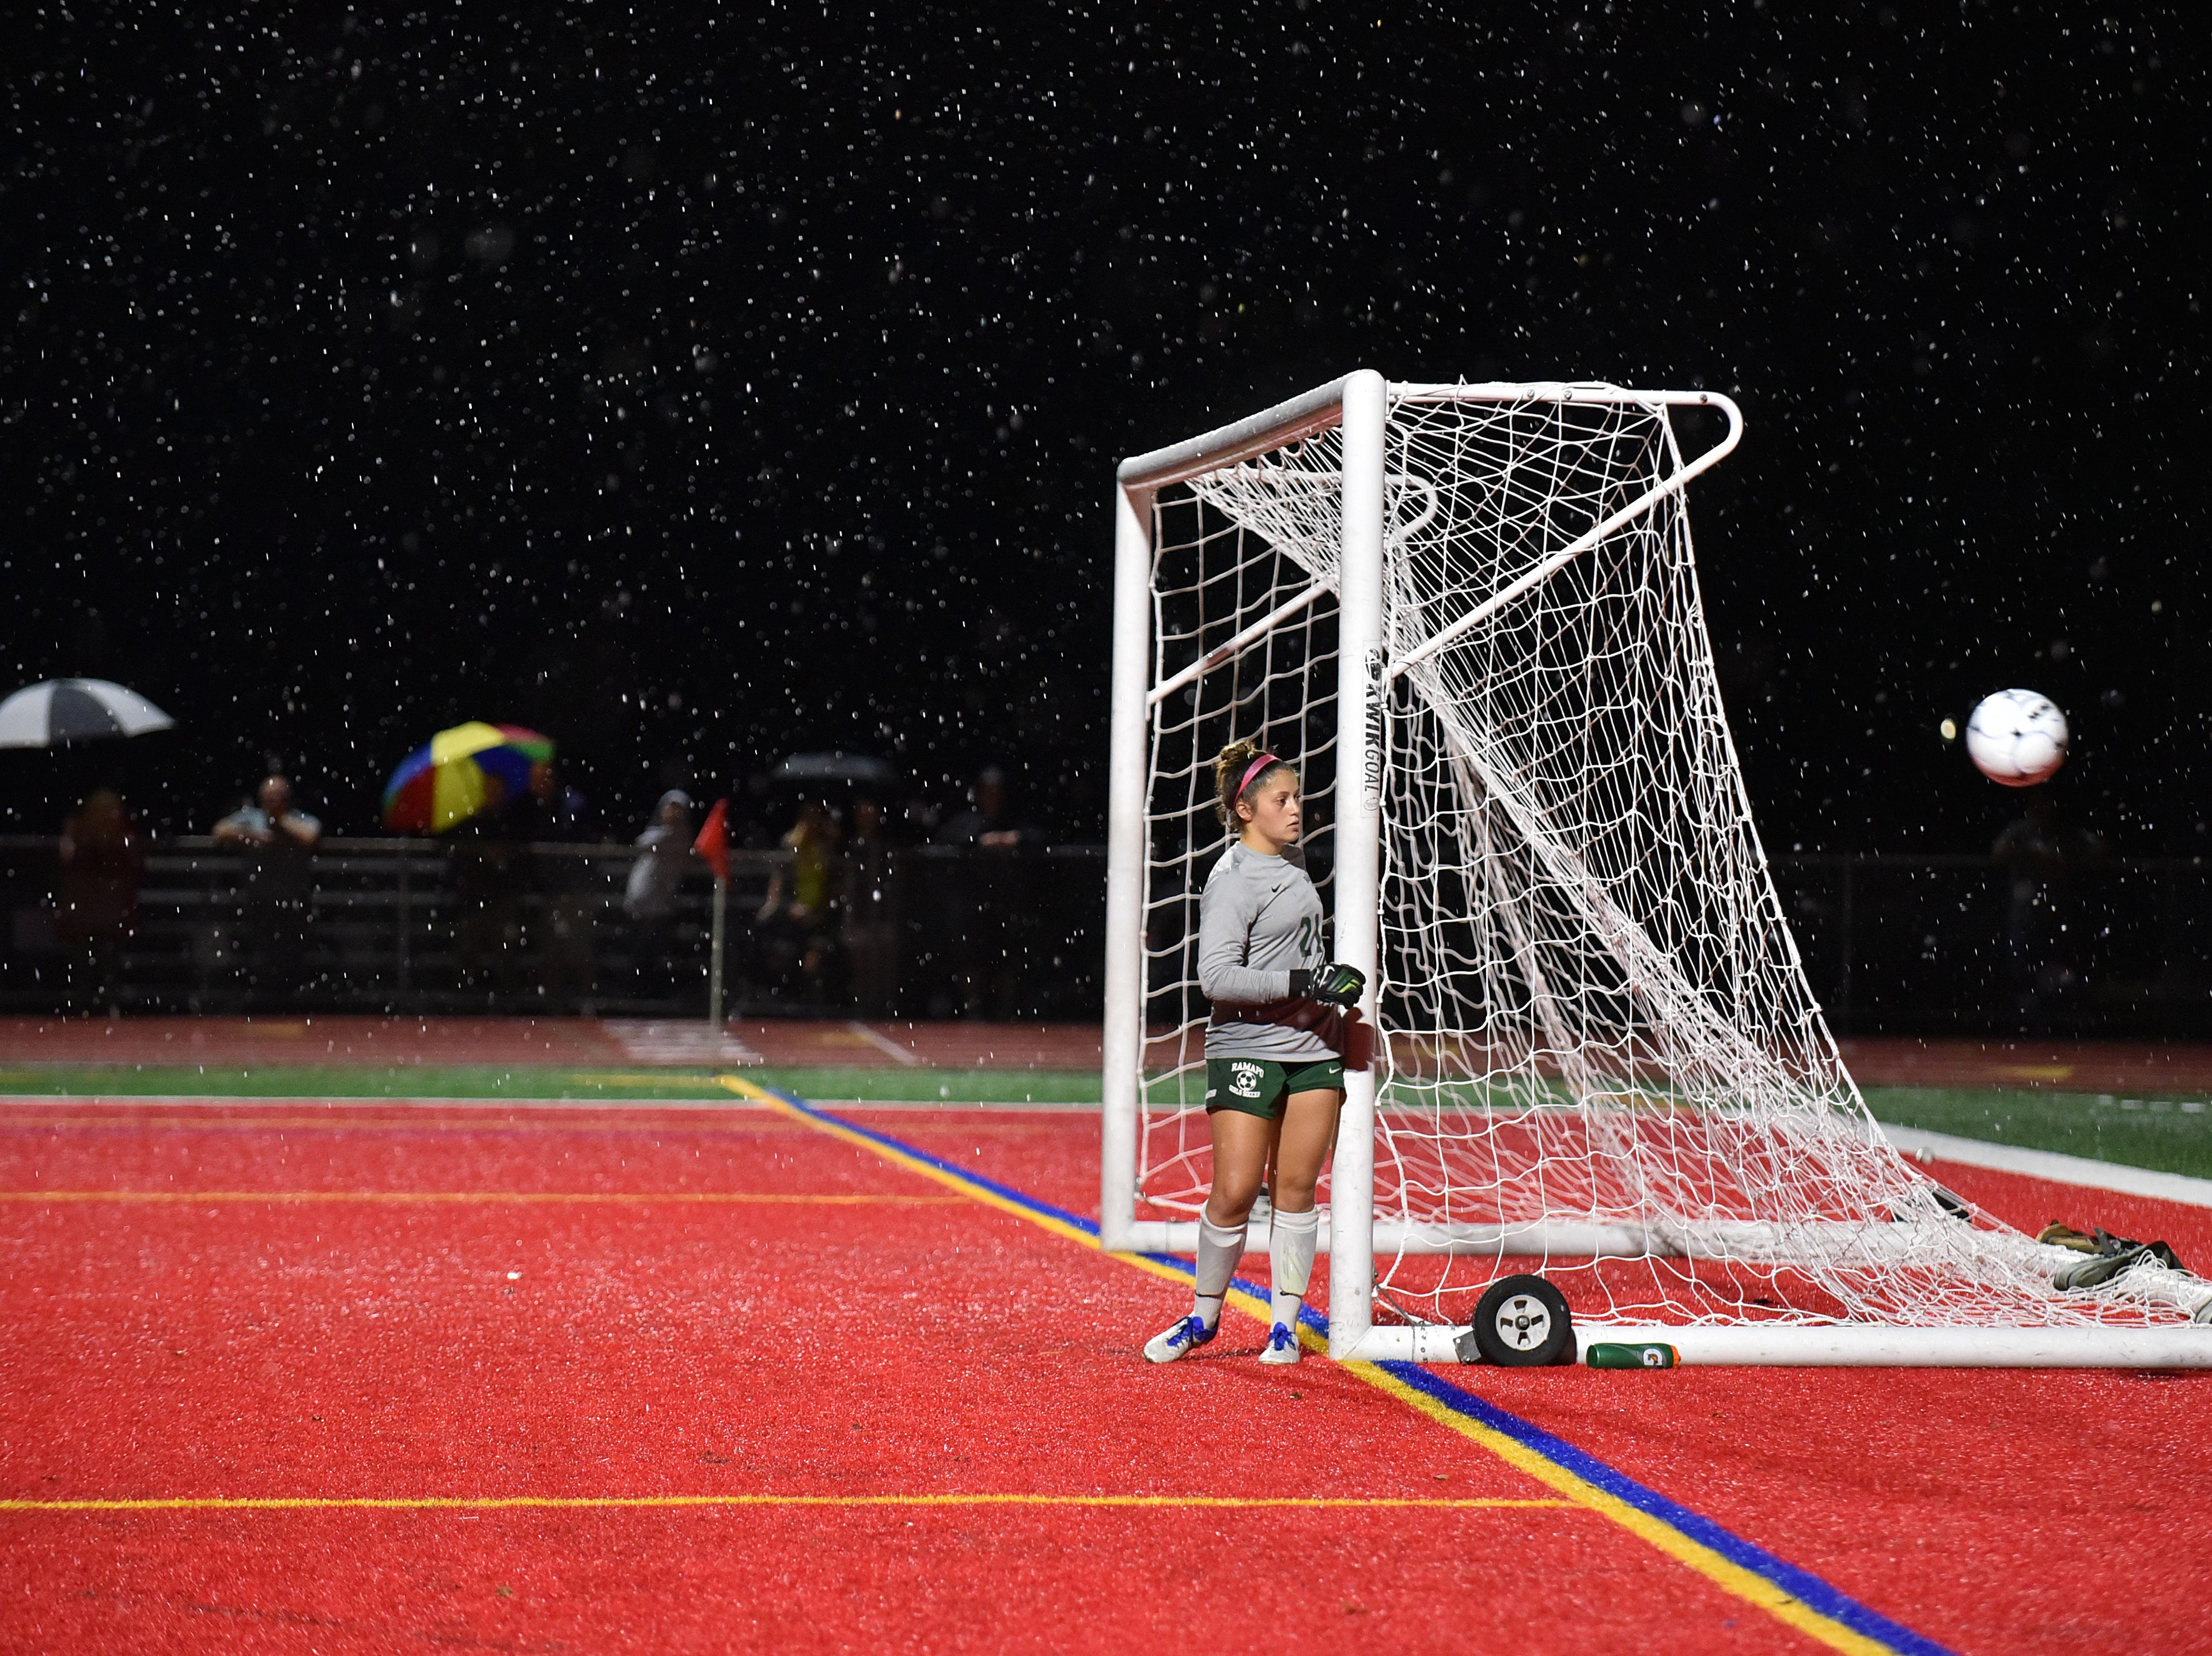 Ramapo goal keeper Natalie Kologrivov waches the ball flying by her net while rain falls at a match versus Northern Highlands.